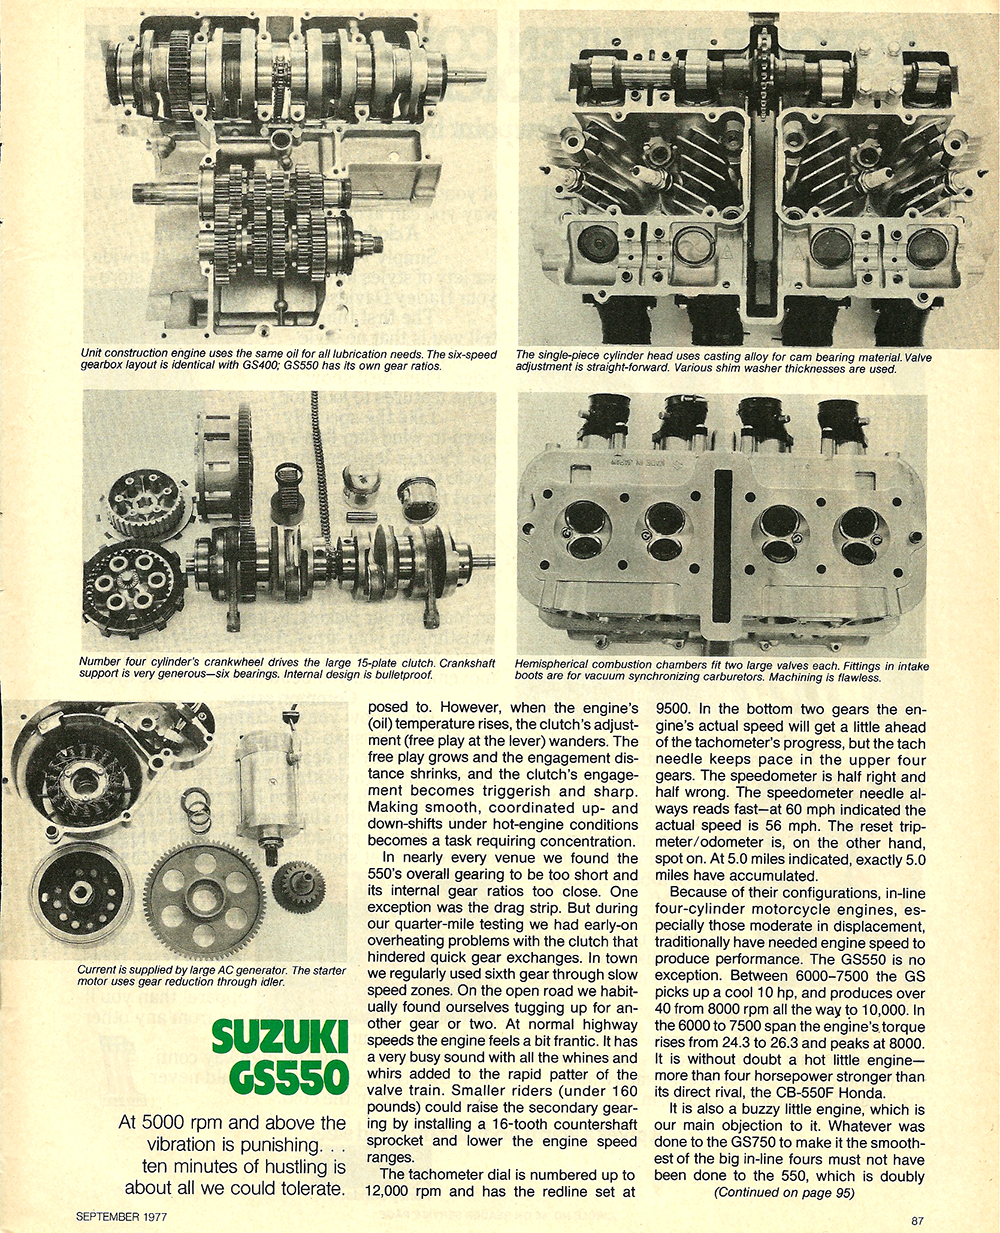 1977 Suzuki GS550 road test 06.jpg